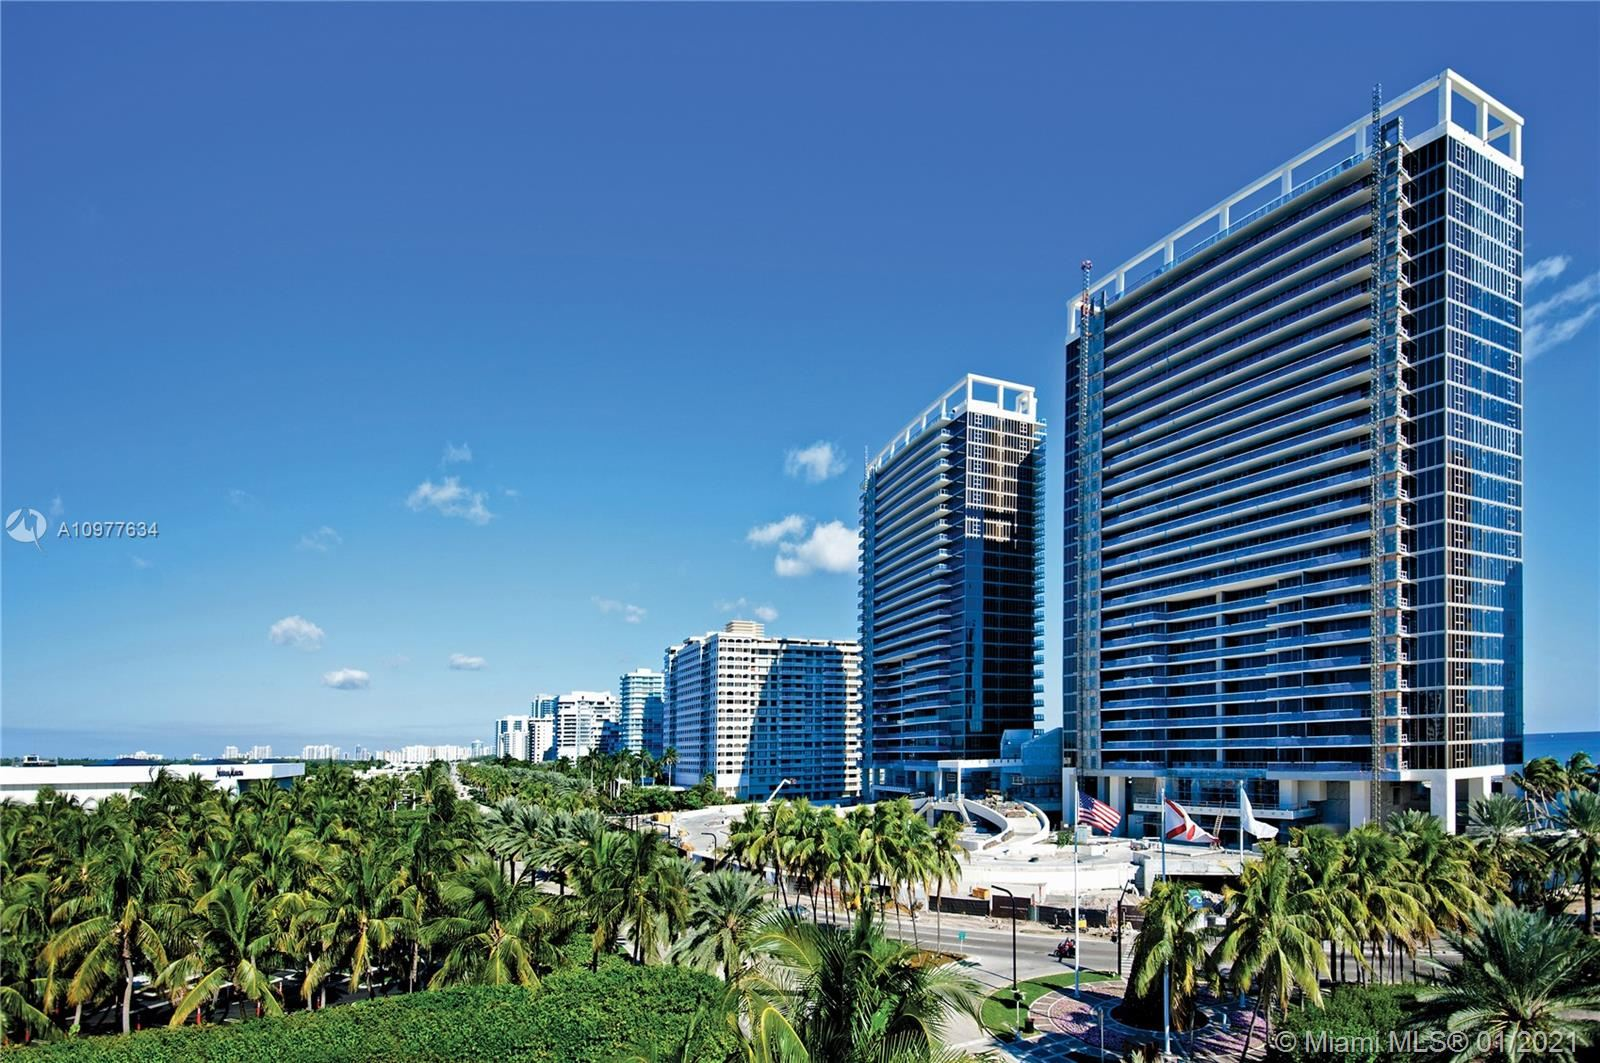 9705 Collins Ave #505N, Bal Harbour, FL 33154 - #: A10977634